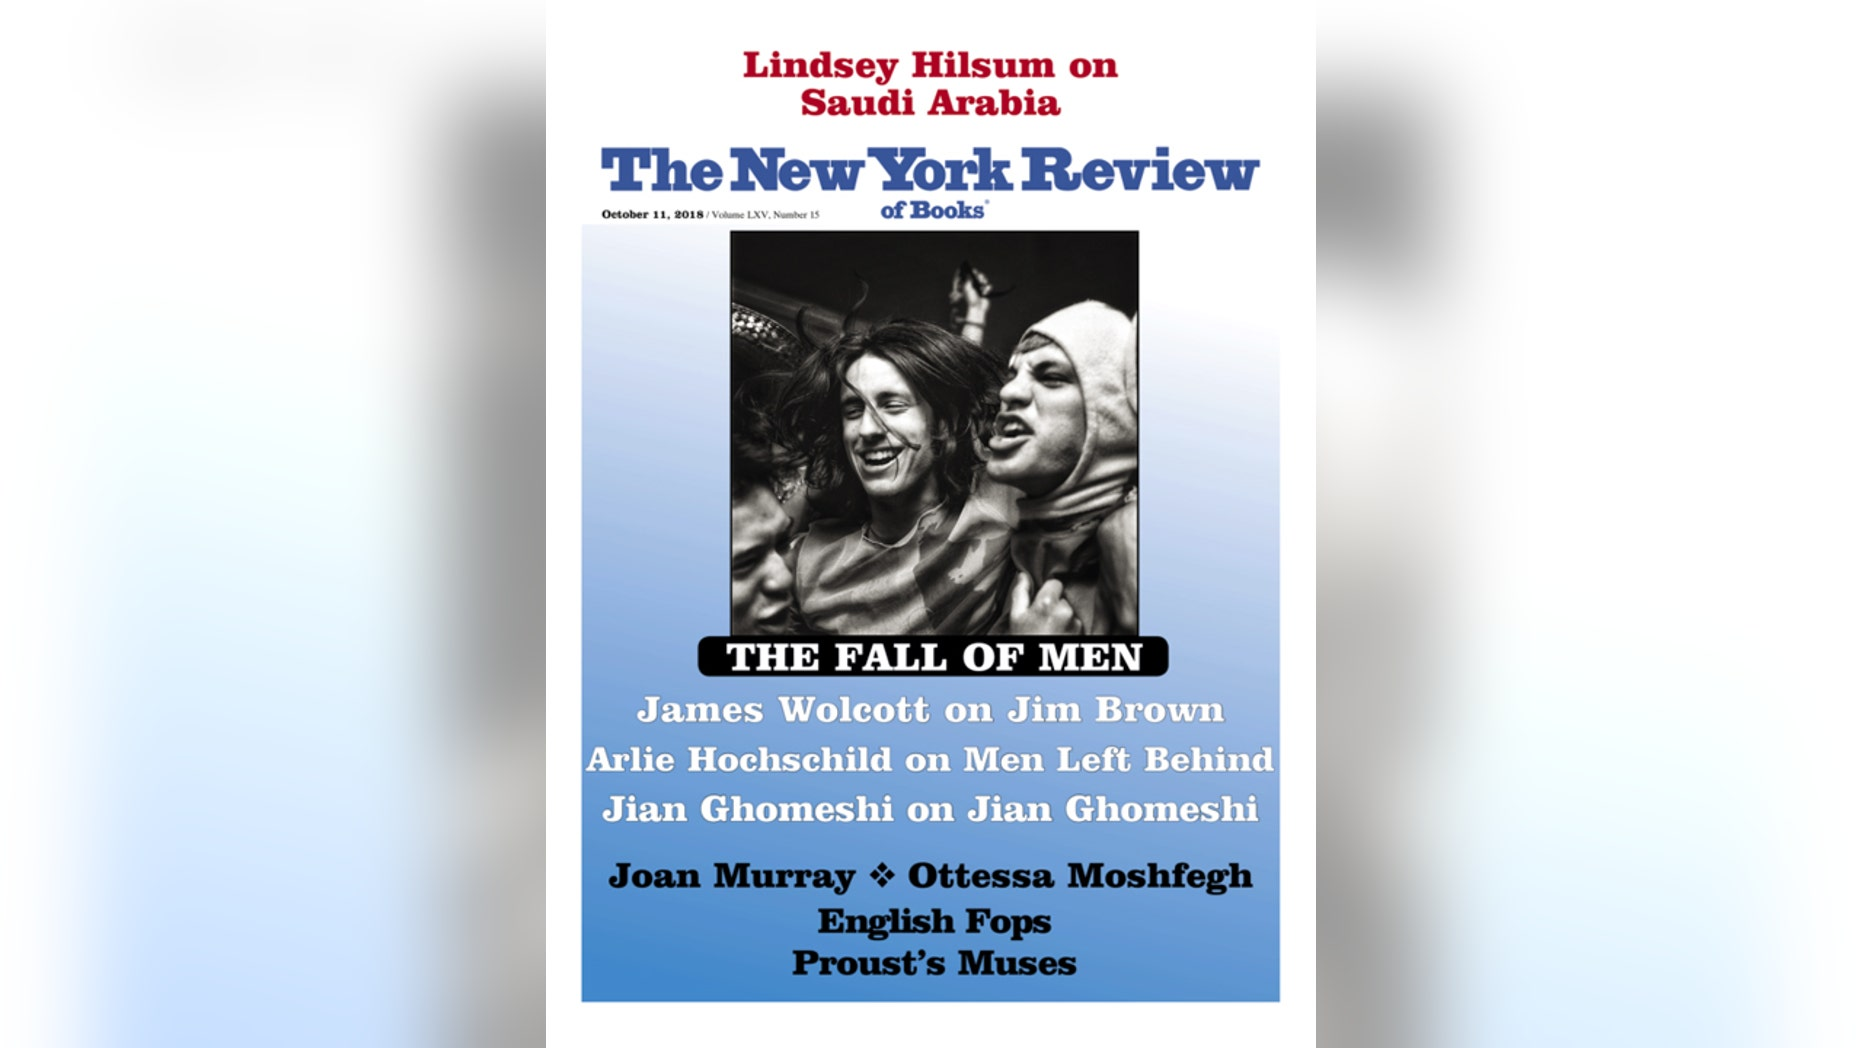 Ian Buruma, editor of the New York Review of Books, is out at the publication following swift backlash over an essay by Jian Ghomeshi, who has been accused of sexual assault and battery by over 20 women.